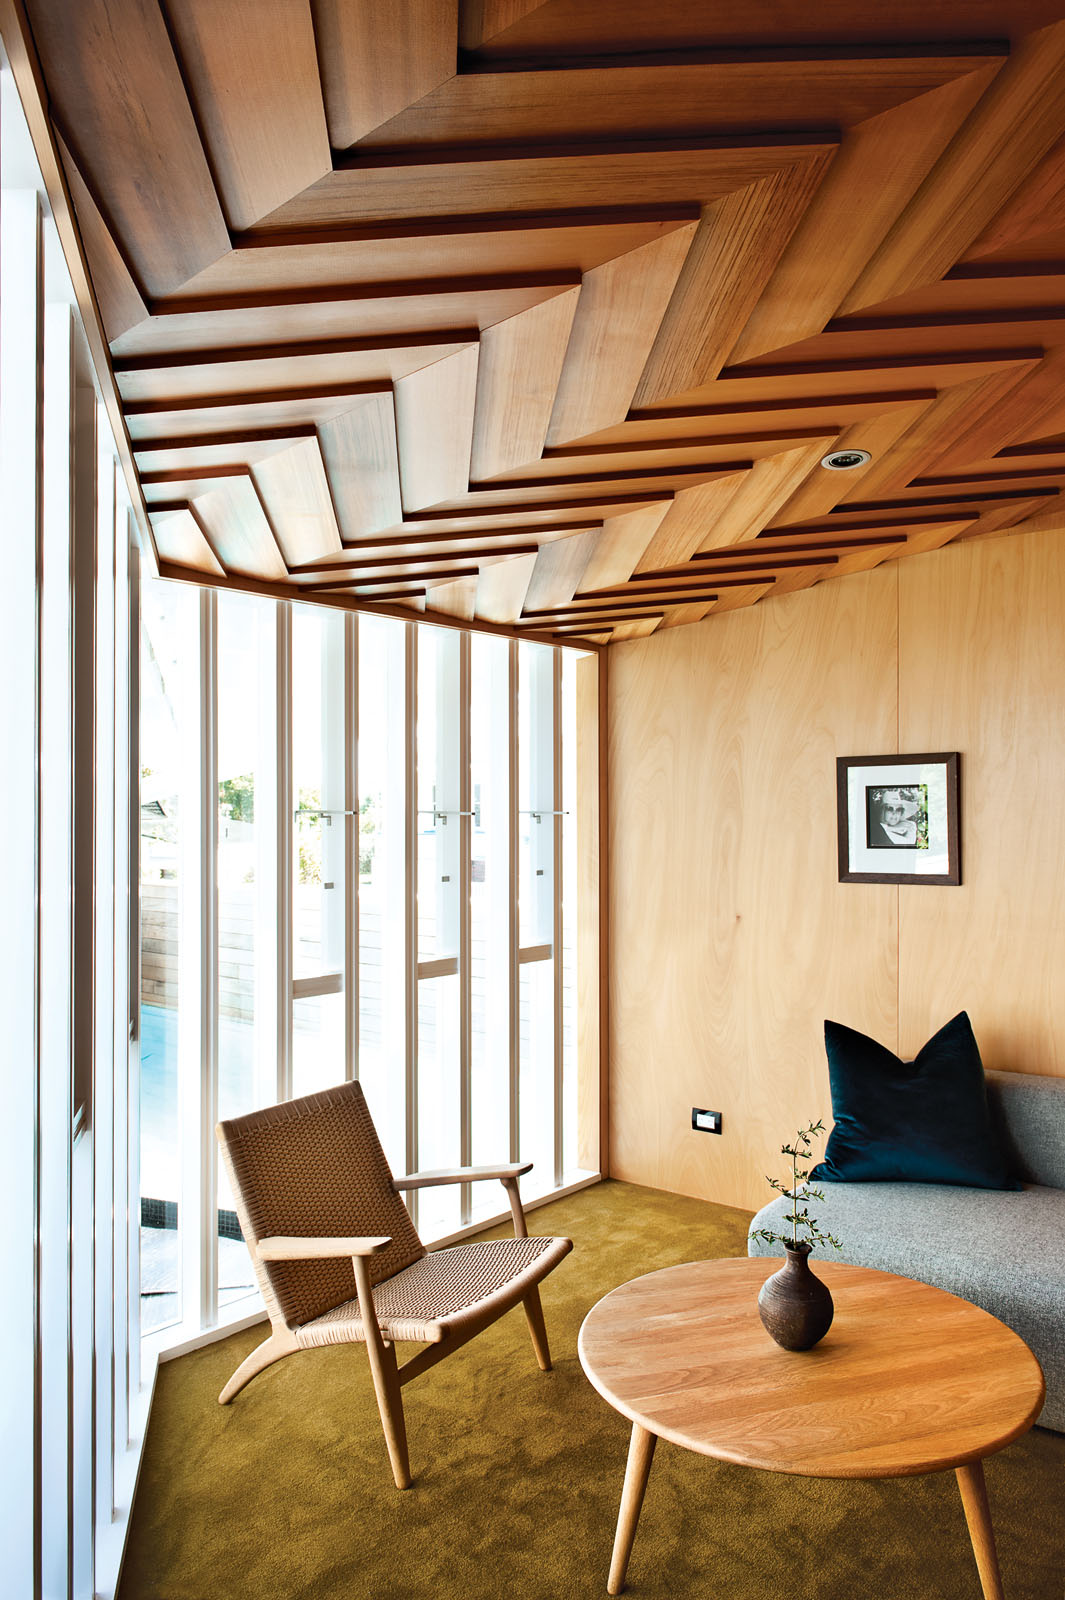 Painted Wood Ceilings Stylish Unique Ceiling Design Ideas Freshome